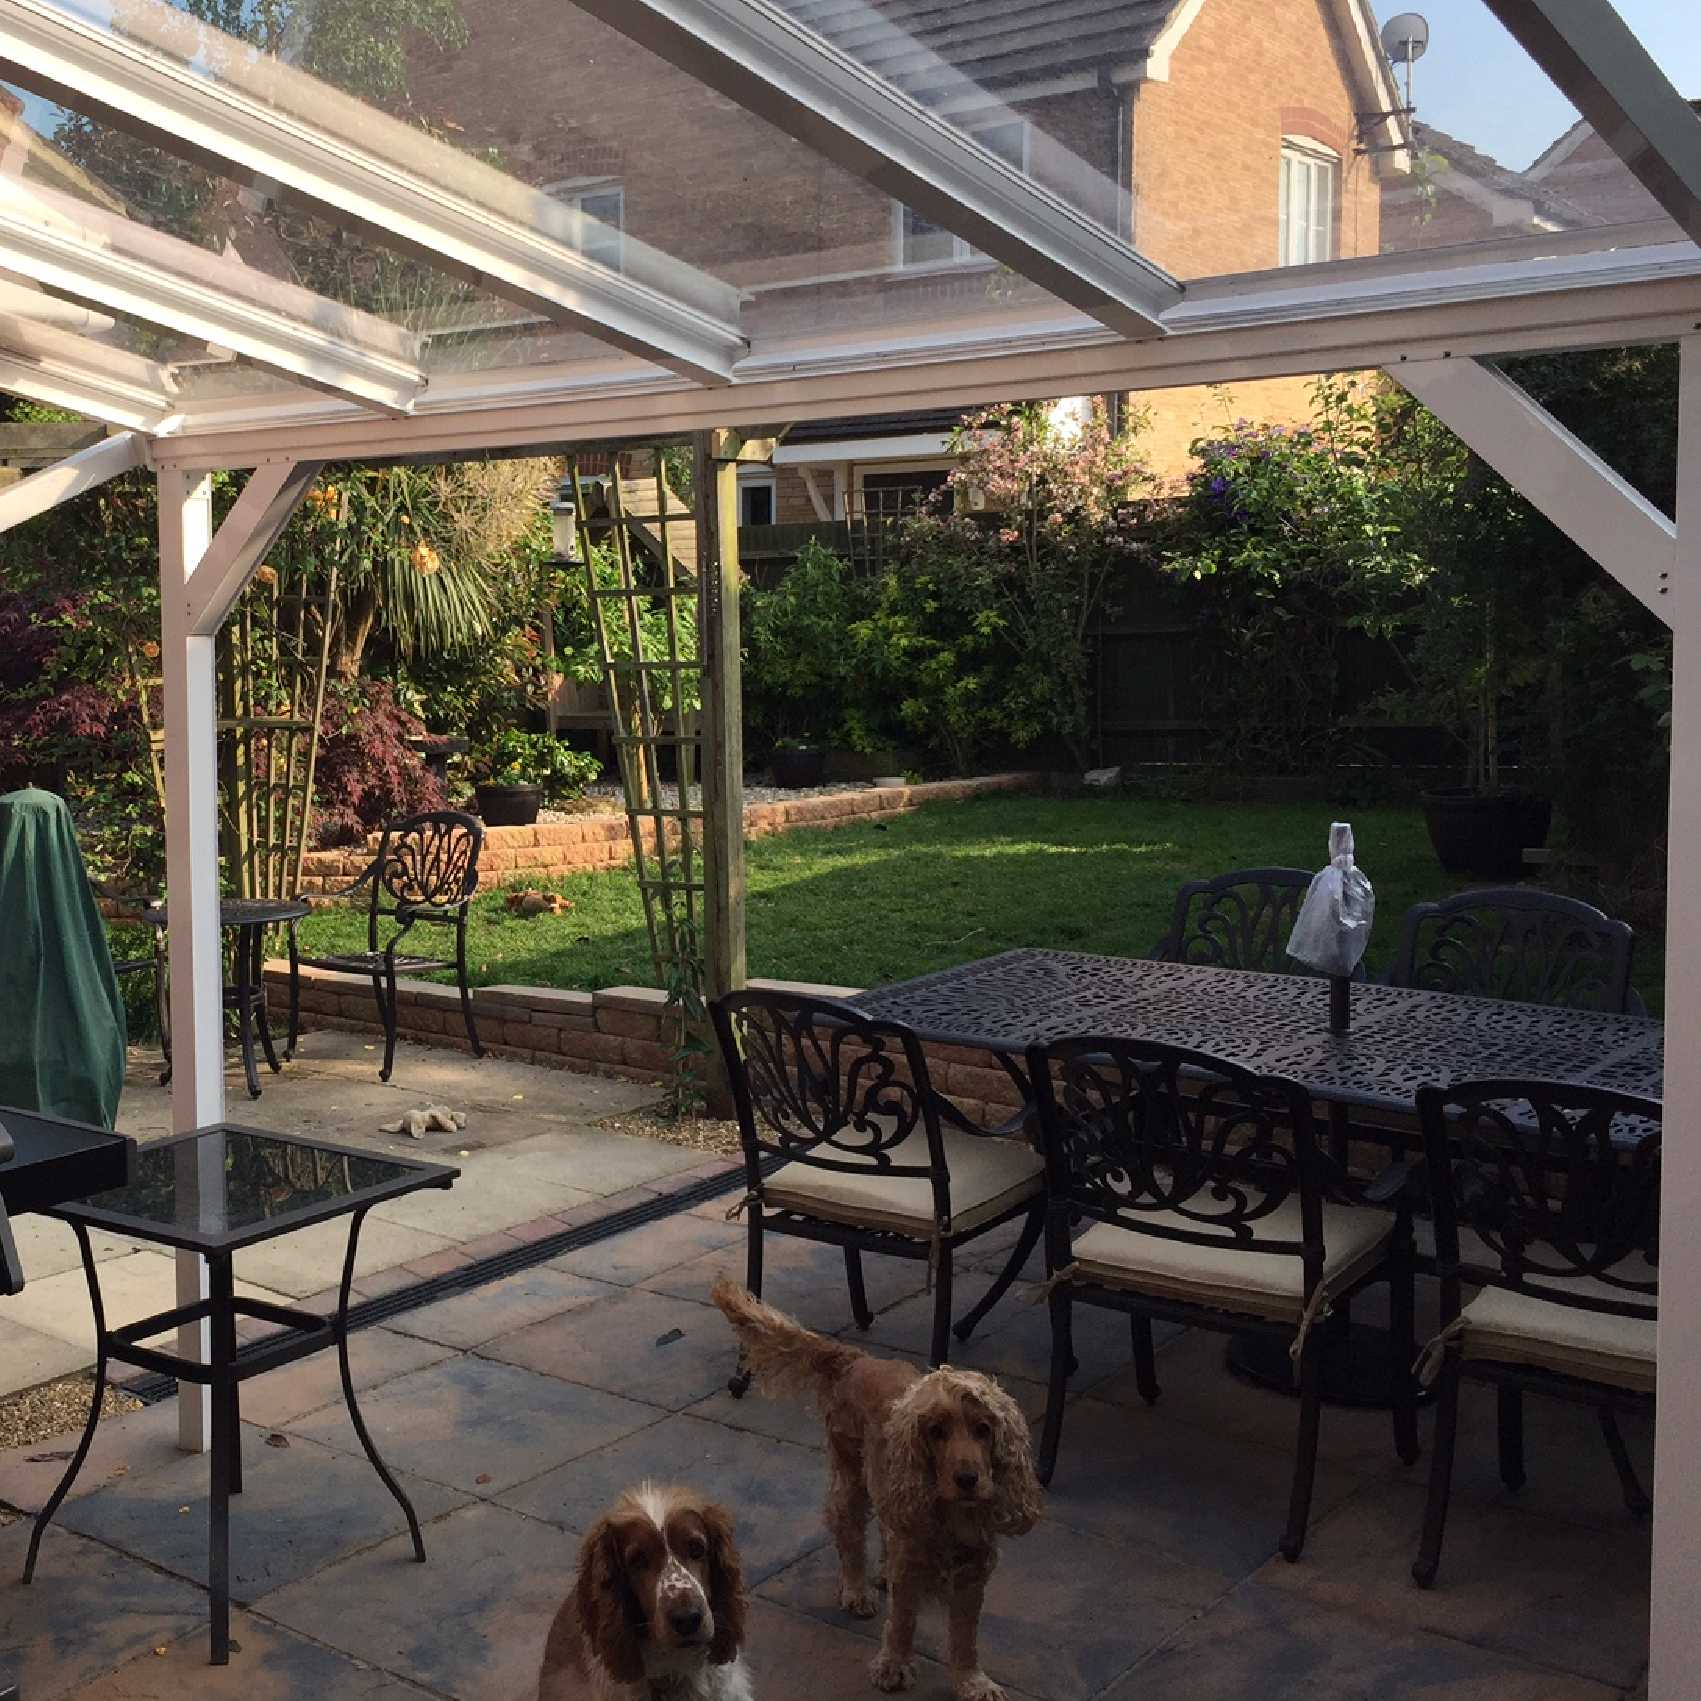 Affordable Omega Smart White Lean-To Canopy UNGLAZED for 6mm Glazing - 2.1m (W) x 2.0m (P), (2) Supporting Posts